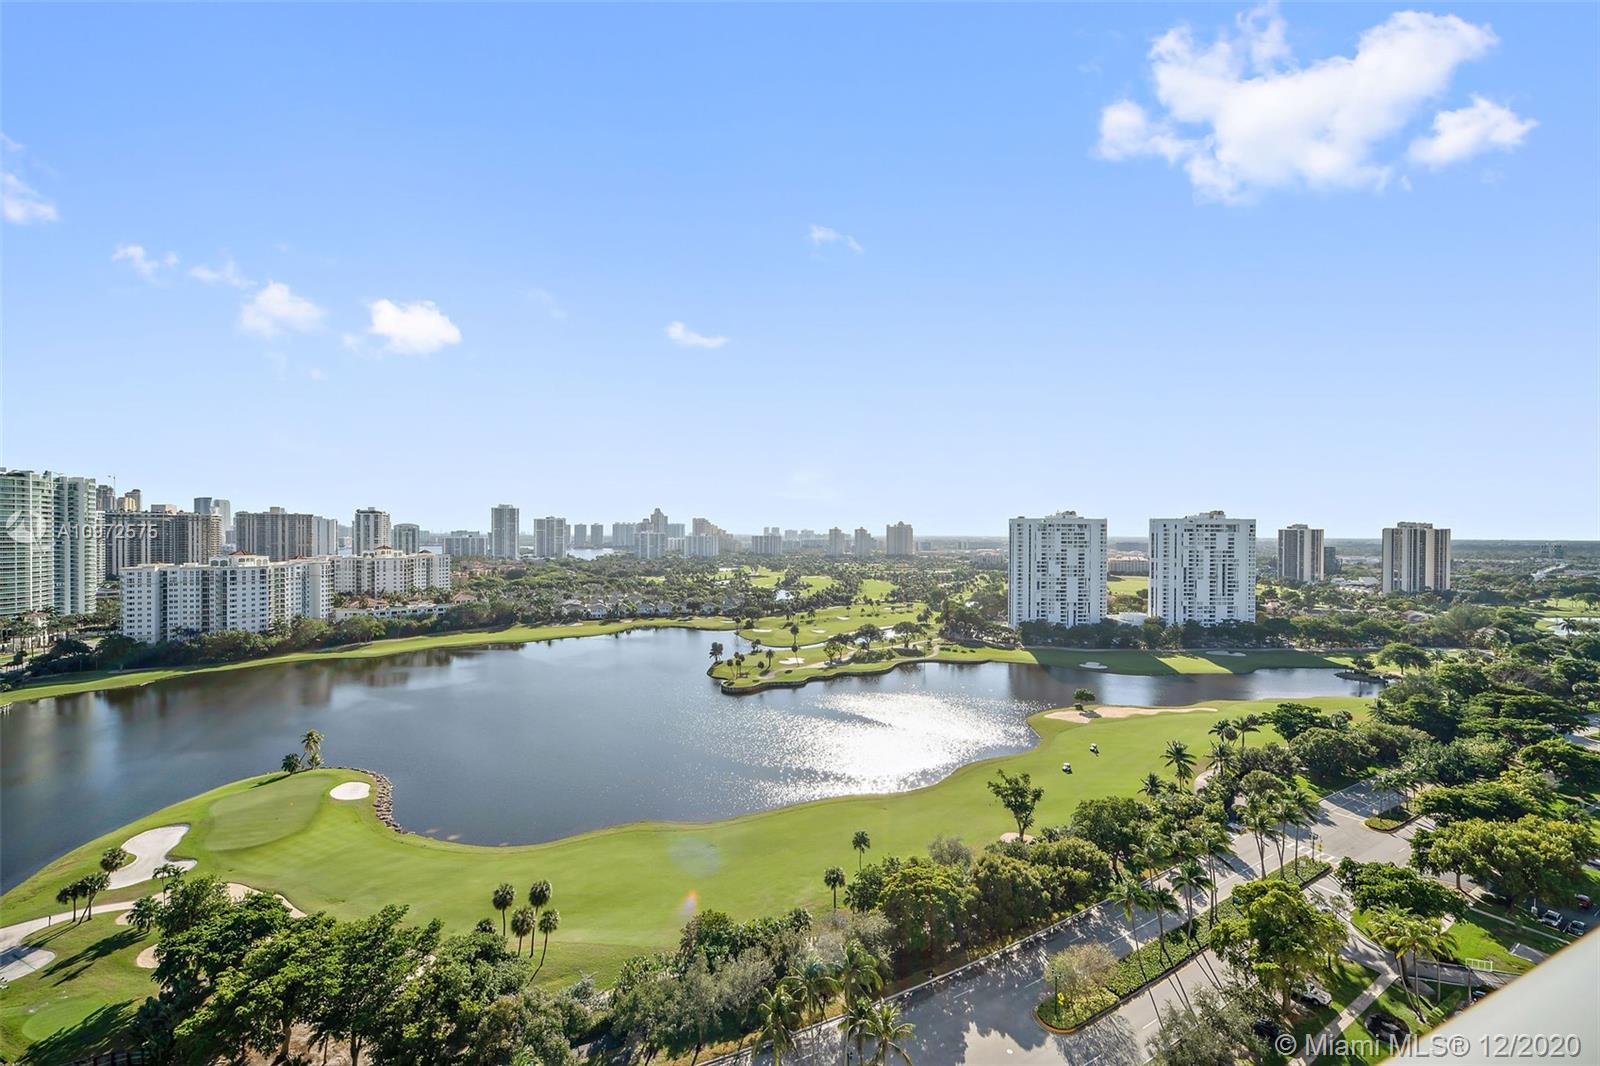 Eldorado Tower Two #2506 - 3675 N Country Club Dr #2506, Aventura, FL 33180